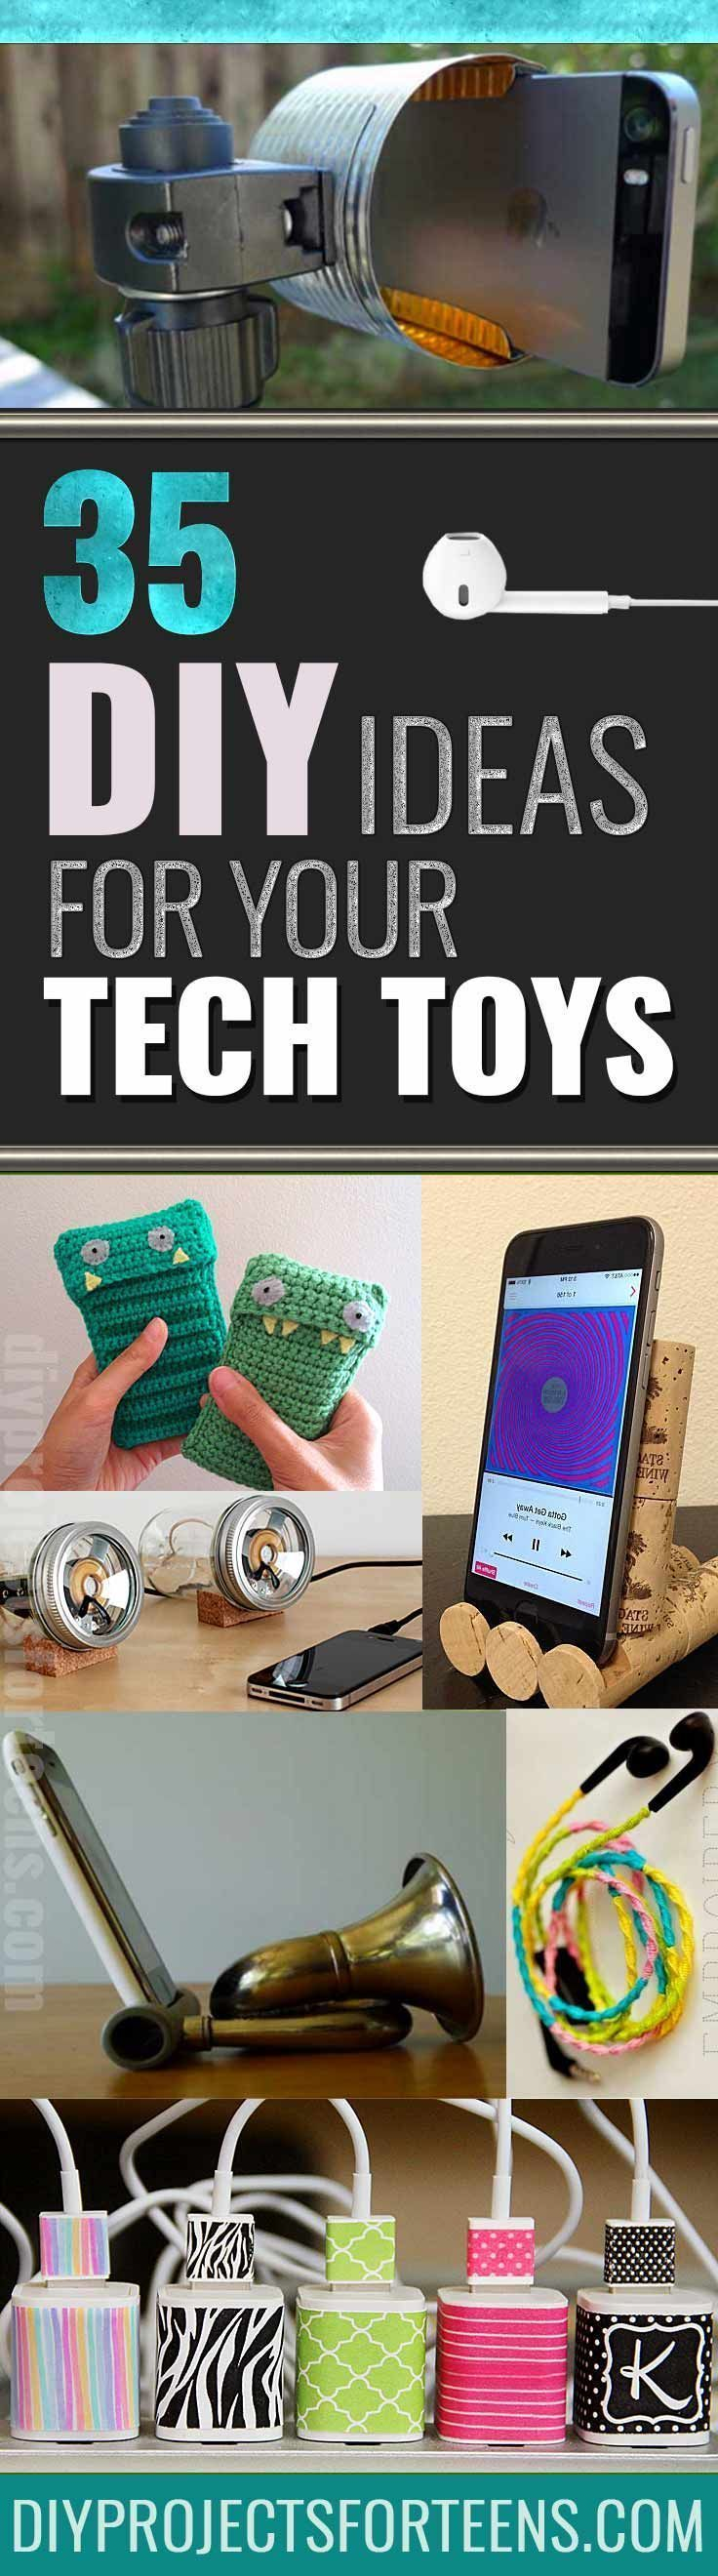 Cool DIY Ideas for Your iPhone iPad Tablets & Phones | Fun Projects for Chargers, Cases and Headphones | Homemade Stands, Speakers, Holders, Armbands and Charging Stations | DIY Projects and Crafts for Teens http://diyprojectsforteens.com/diy-projects-iph